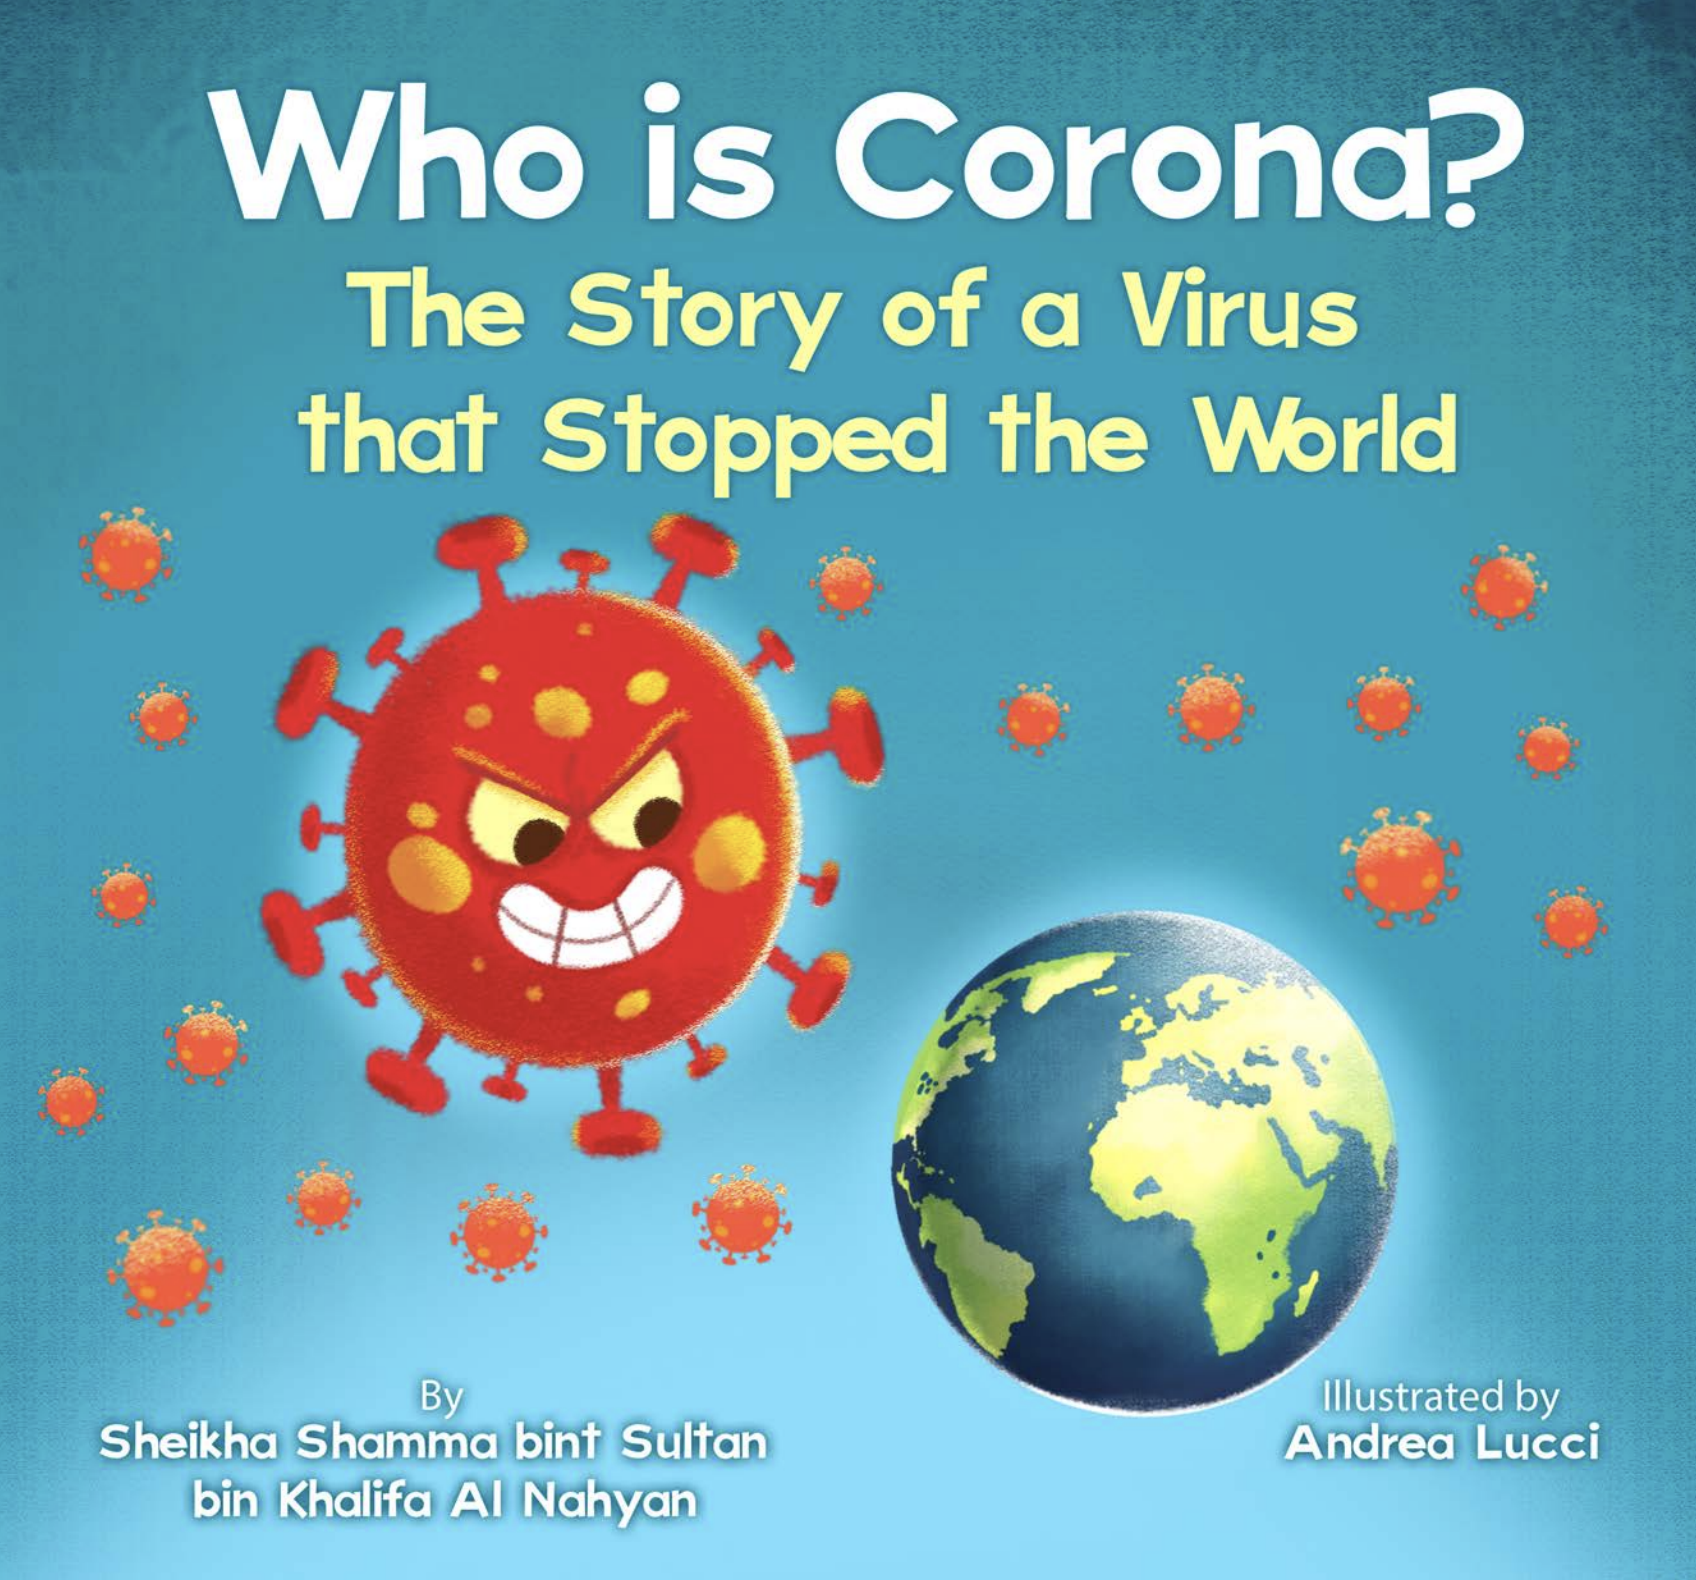 Who is Corona? The Story of a Virus That Stopped the World